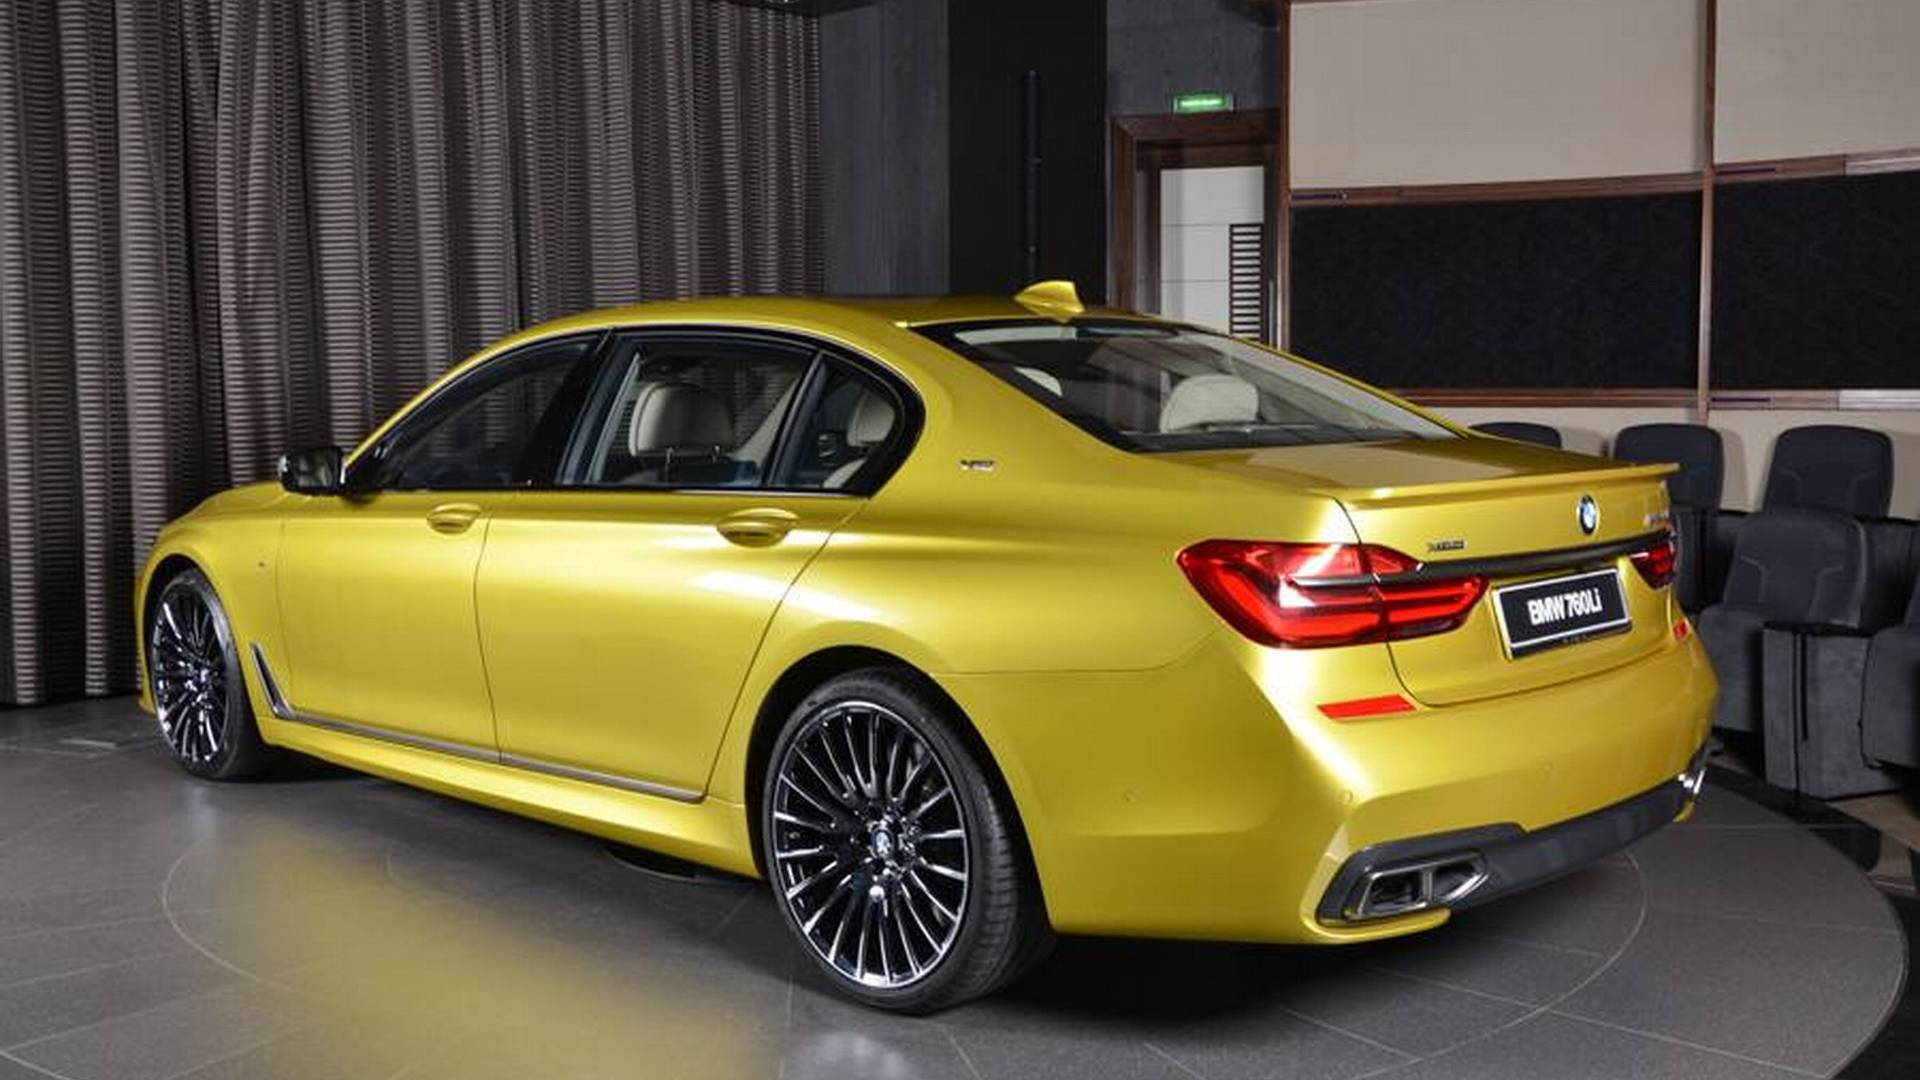 BMW_M60Li_Austin_Yellow_02